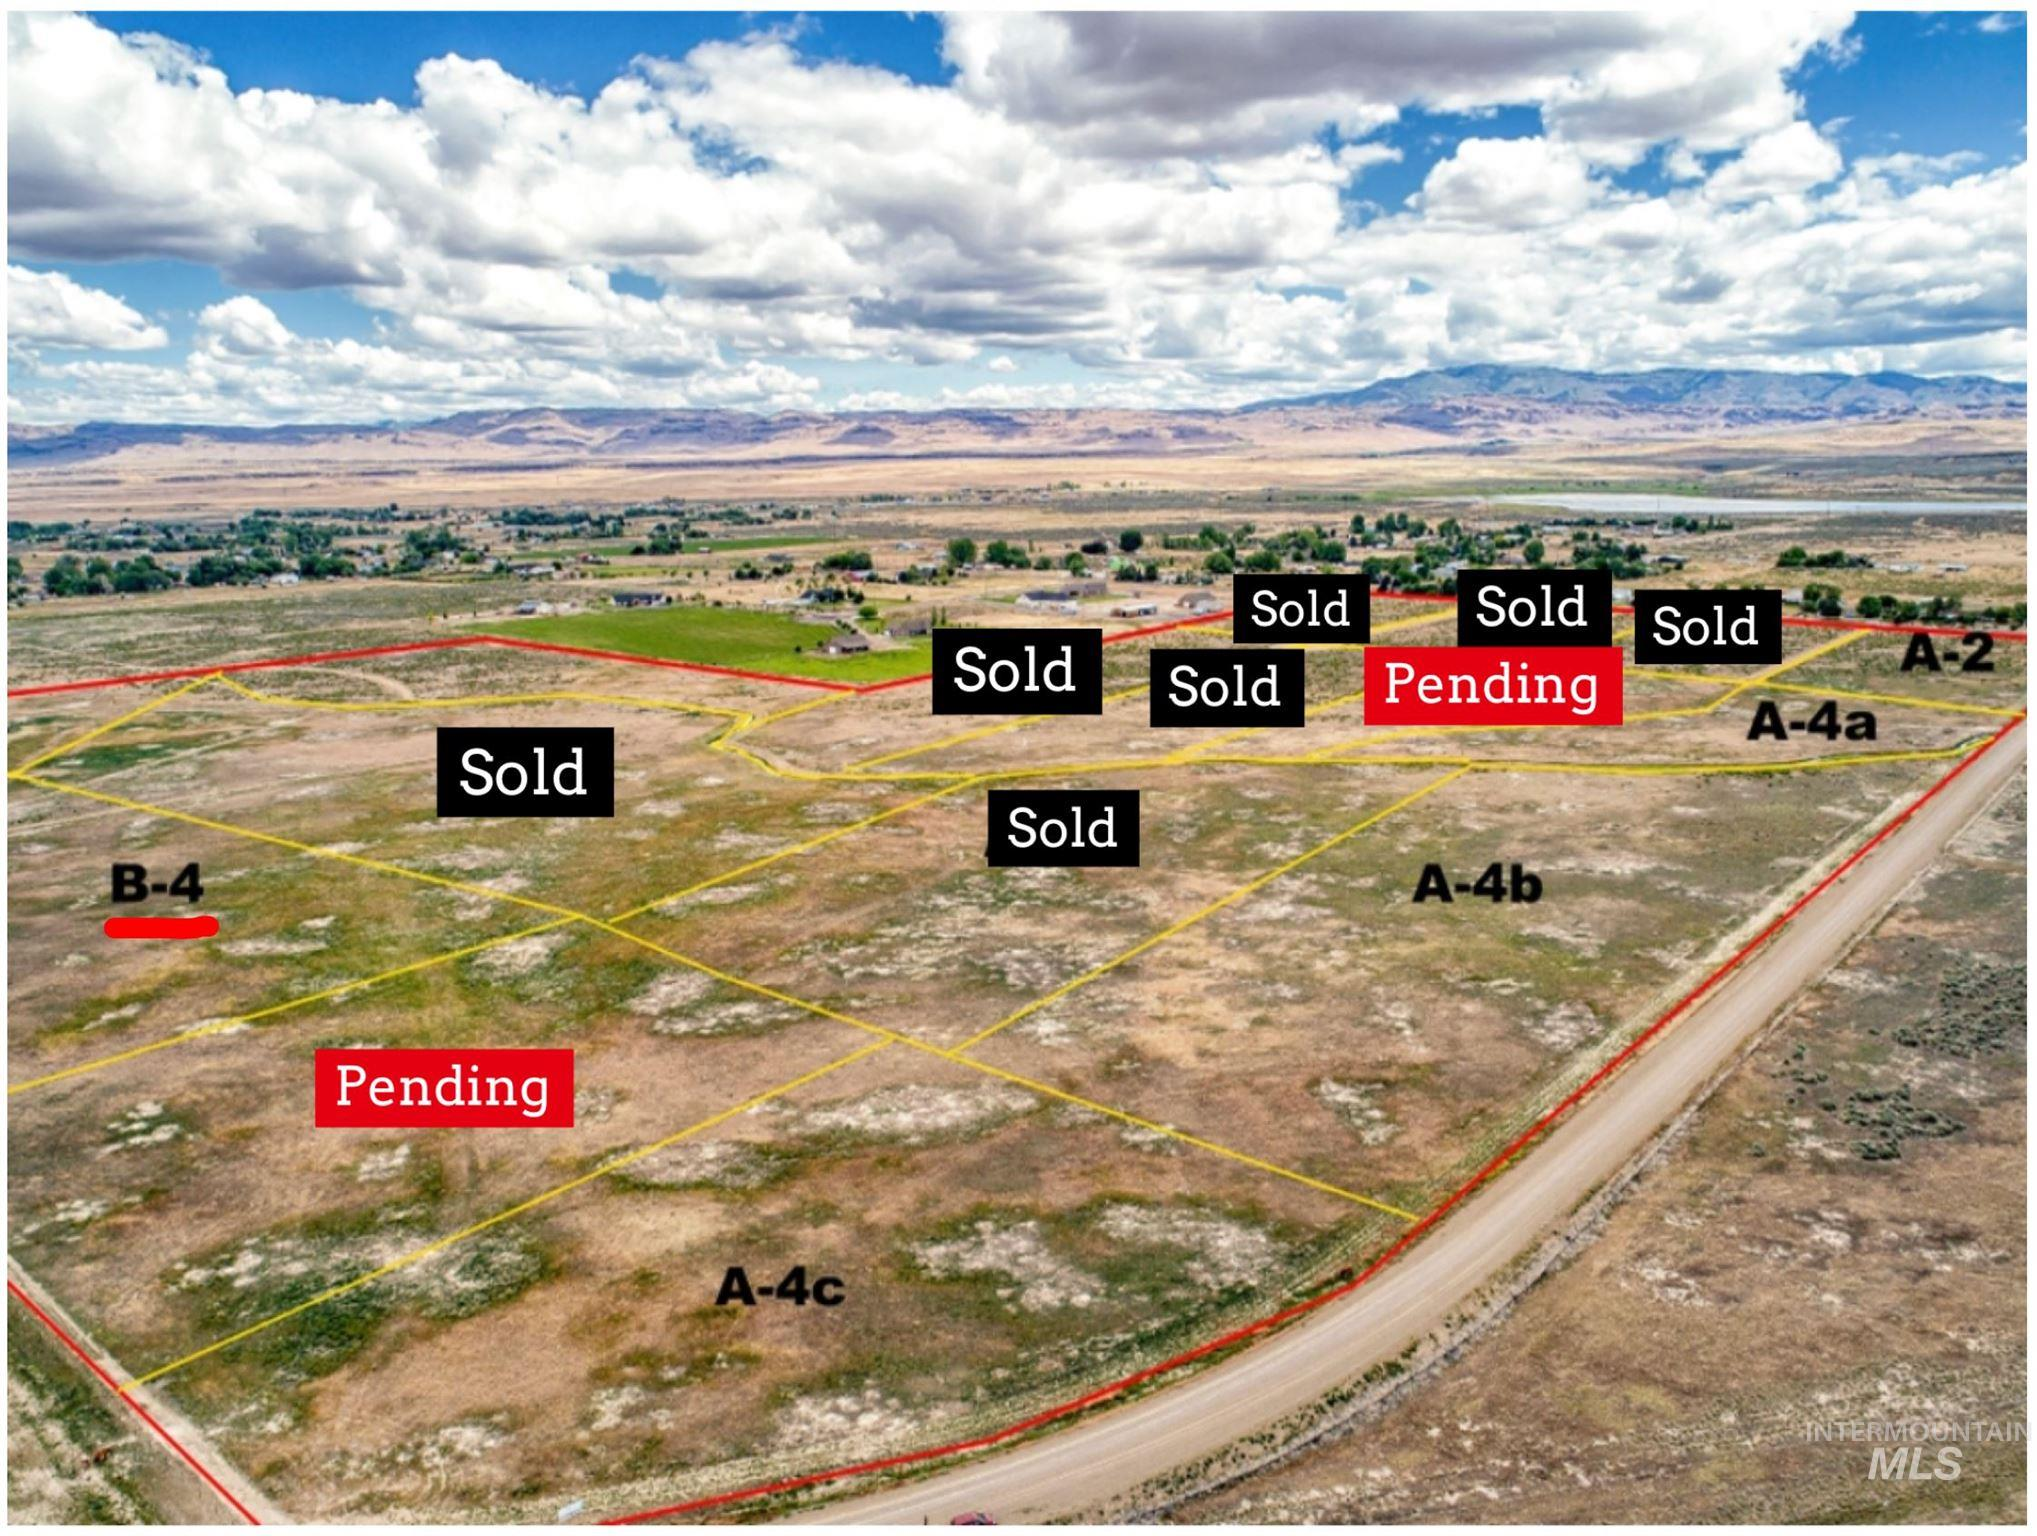 TBD 400 E 27th N, Mountain Home, Idaho 83647, Land For Sale, Price $140,000, 98787521